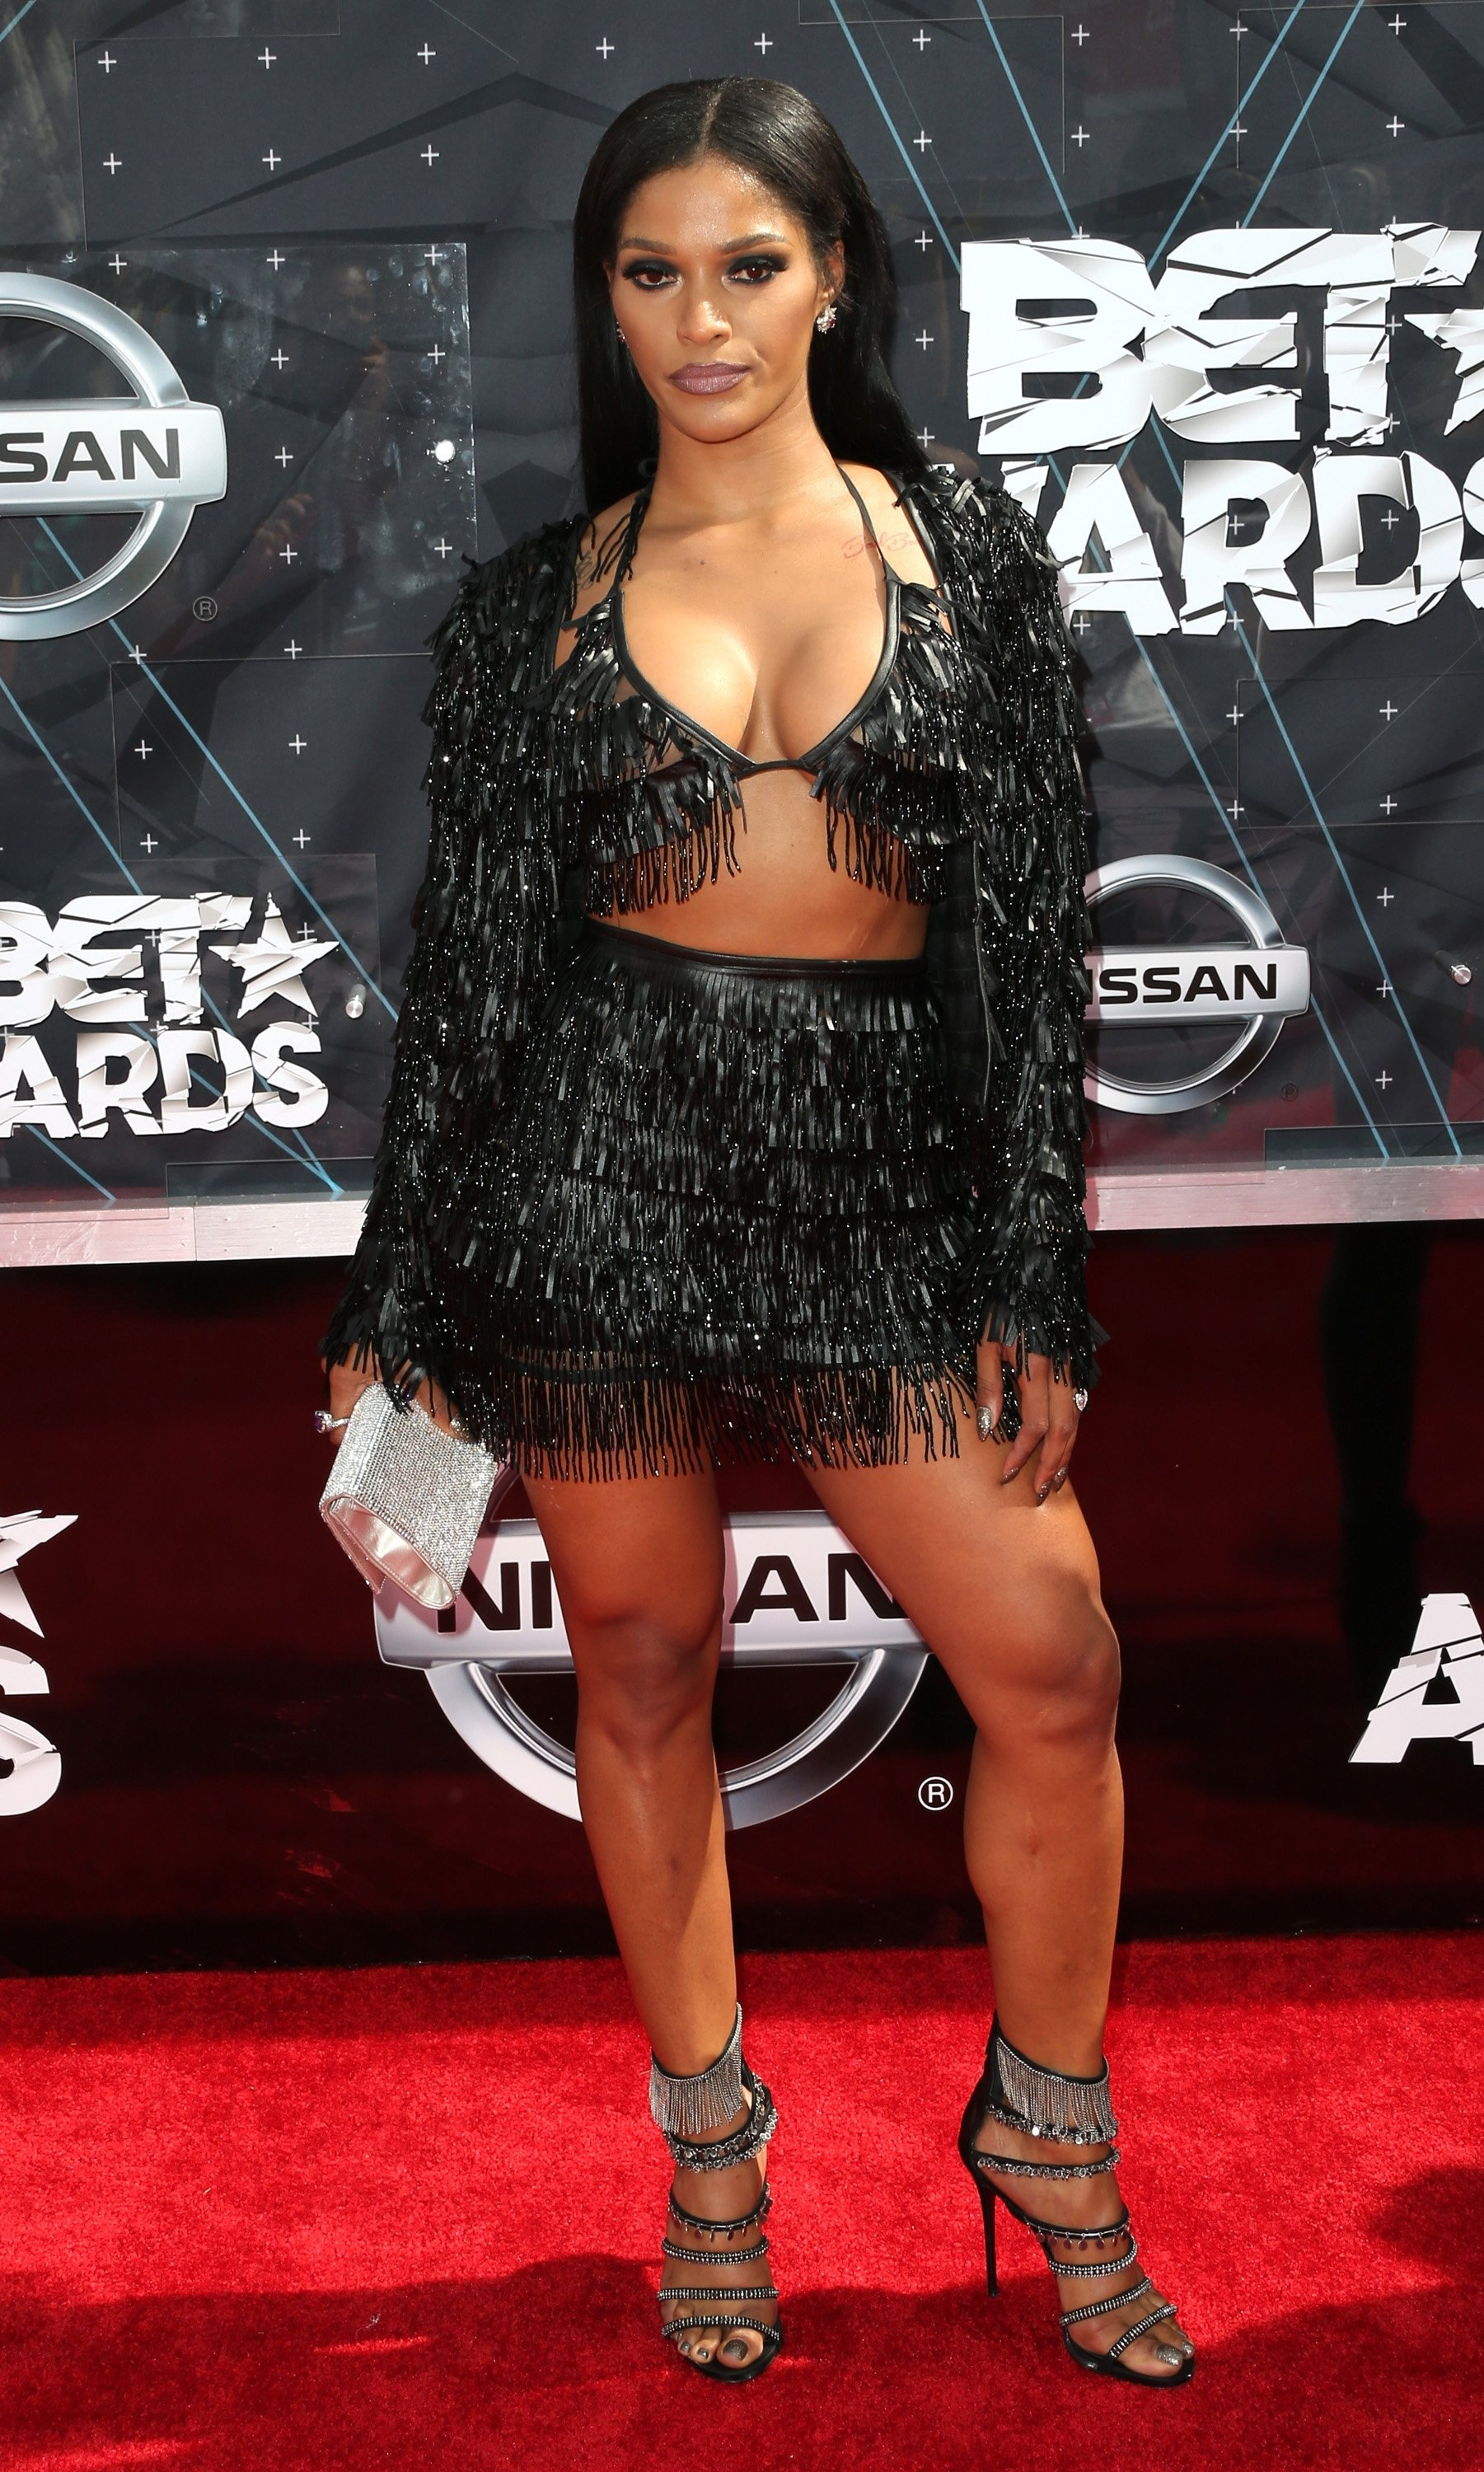 Joseline Hernandez attends the 2015 BET Awards | Photo: Getty Images